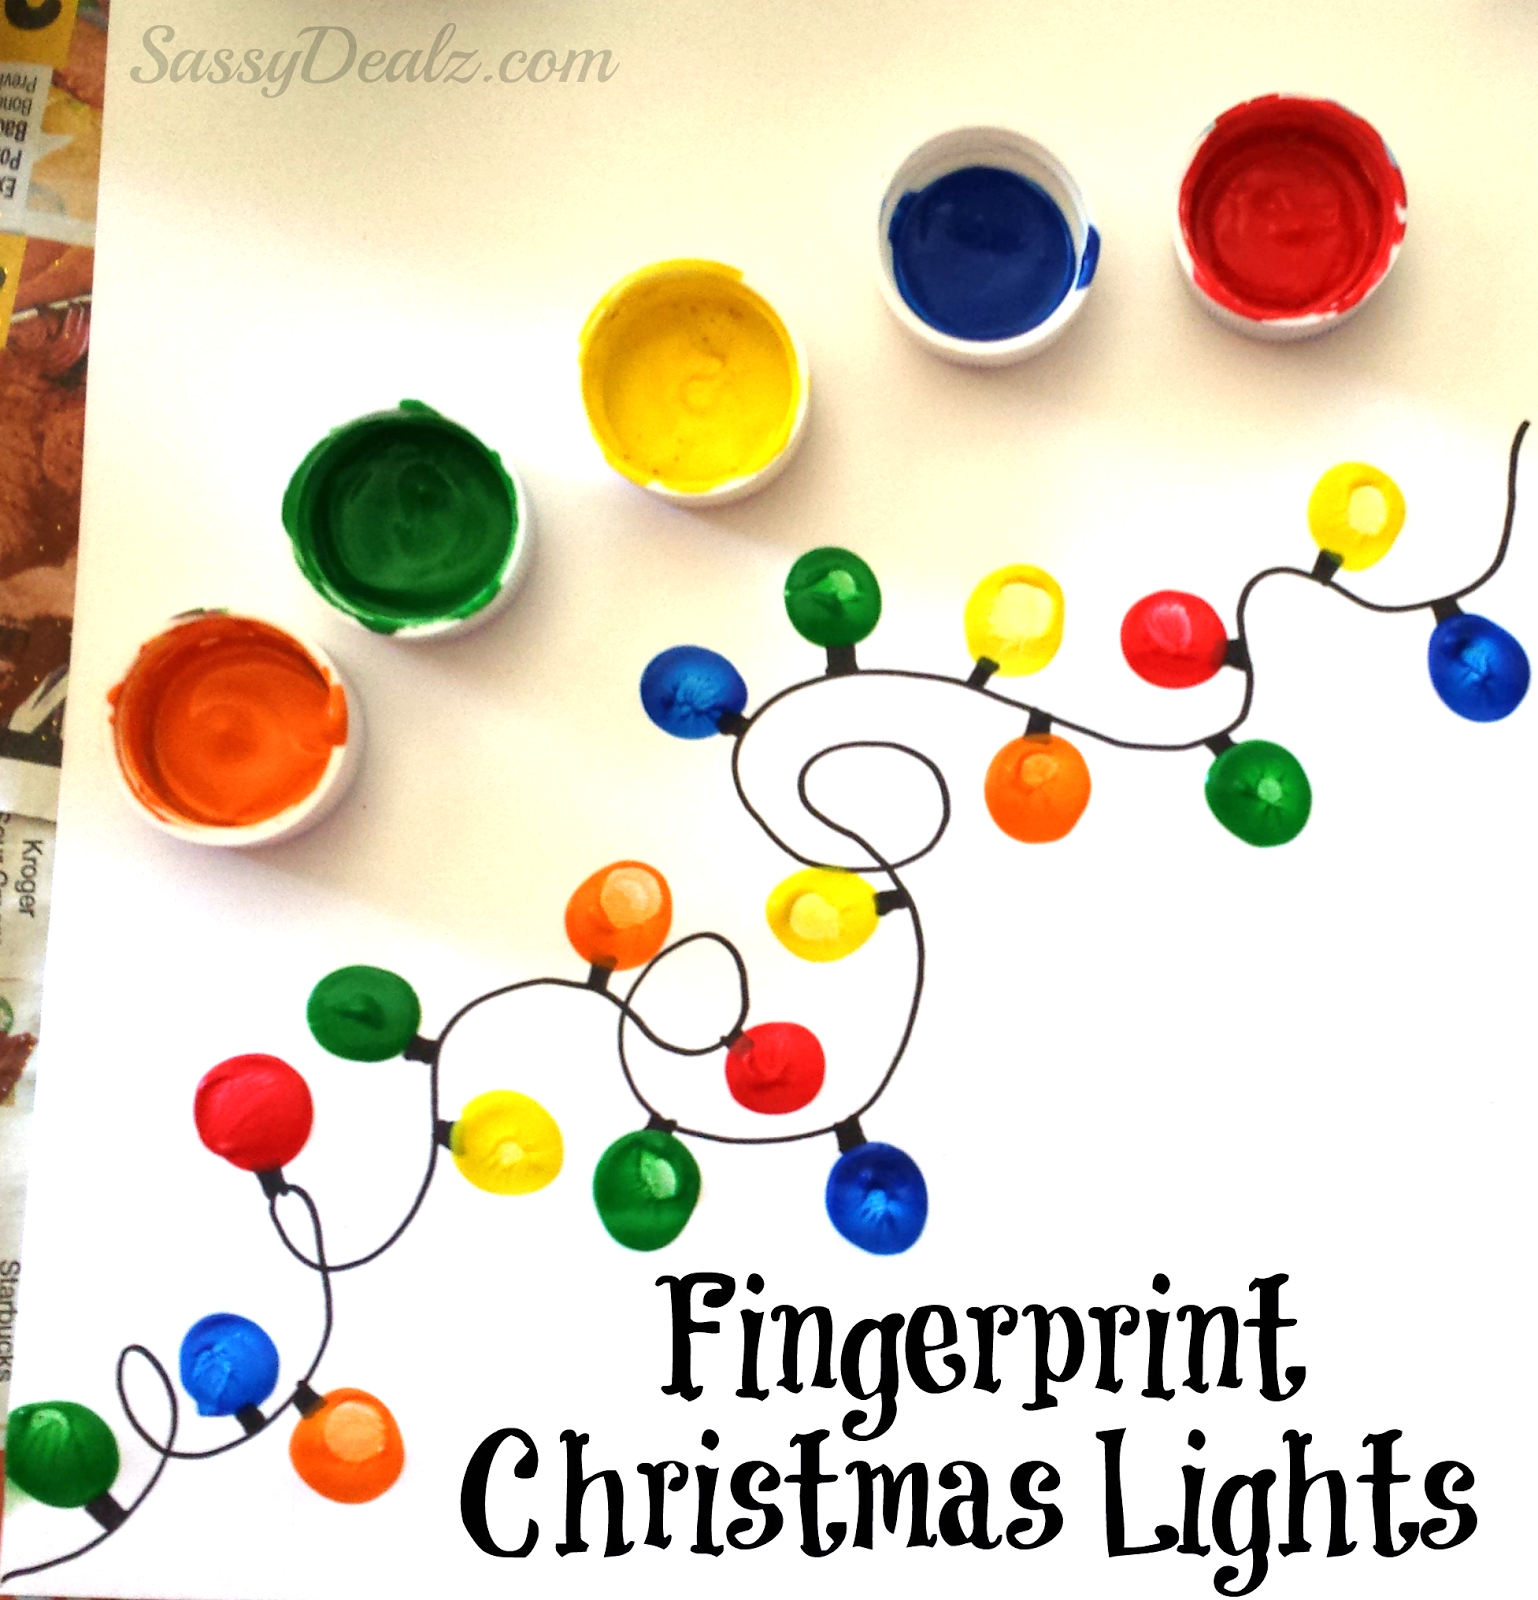 Fingerprint Christmas Light Craft For Kids (DIY Christmas Card Idea ...